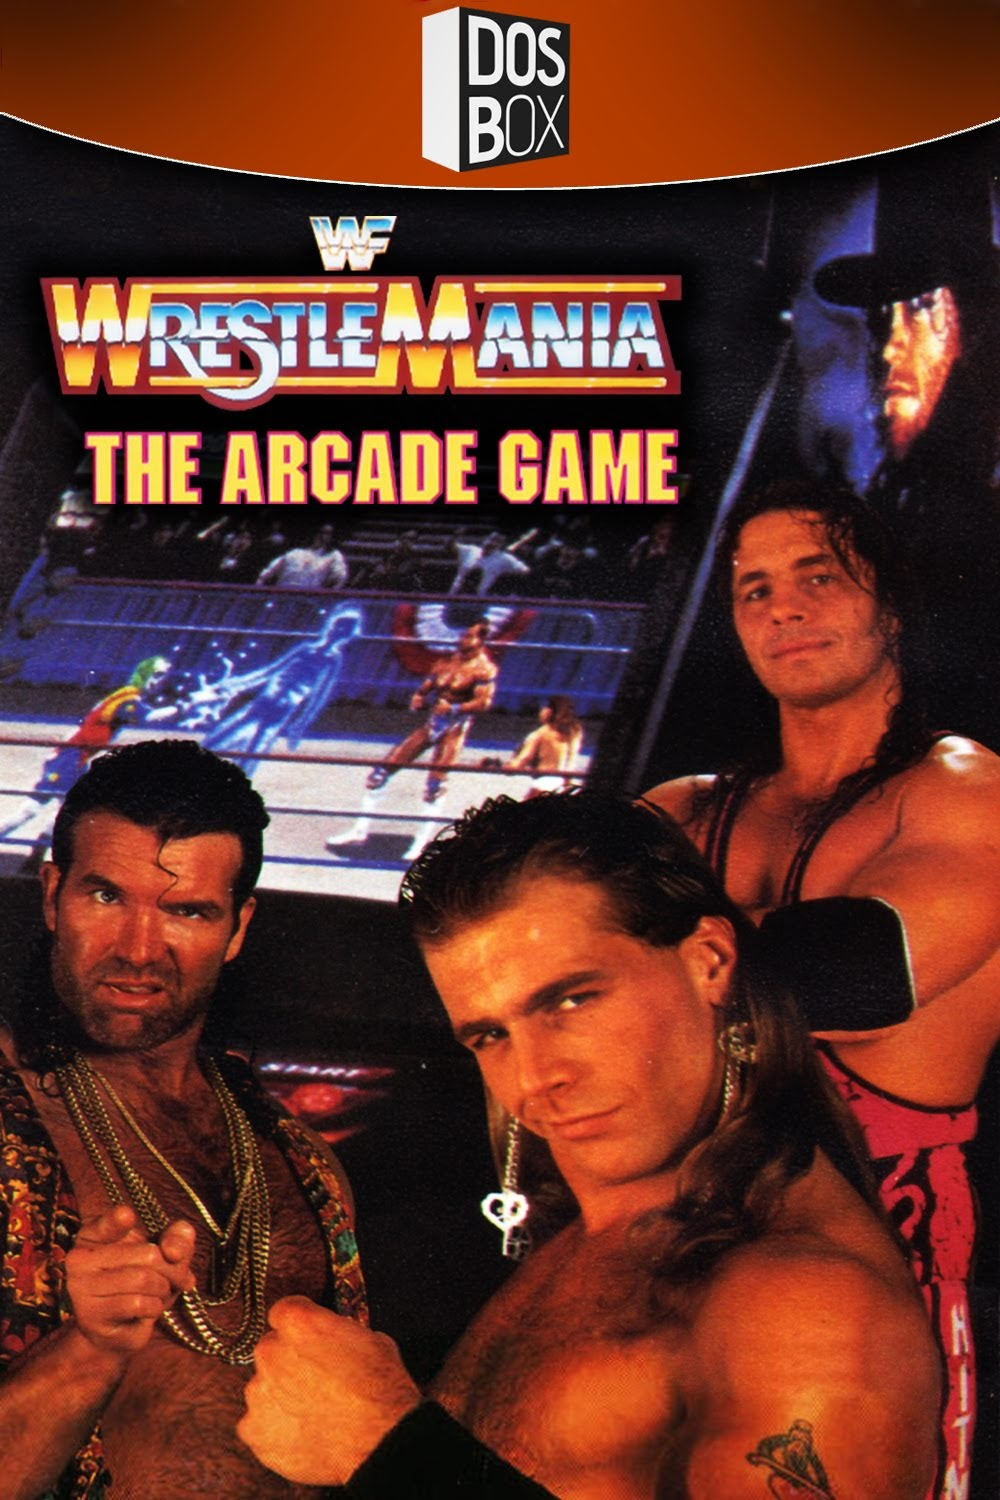 https://collectionchamber.blogspot.com/p/wwf-wrestlemania-arcade-game.html